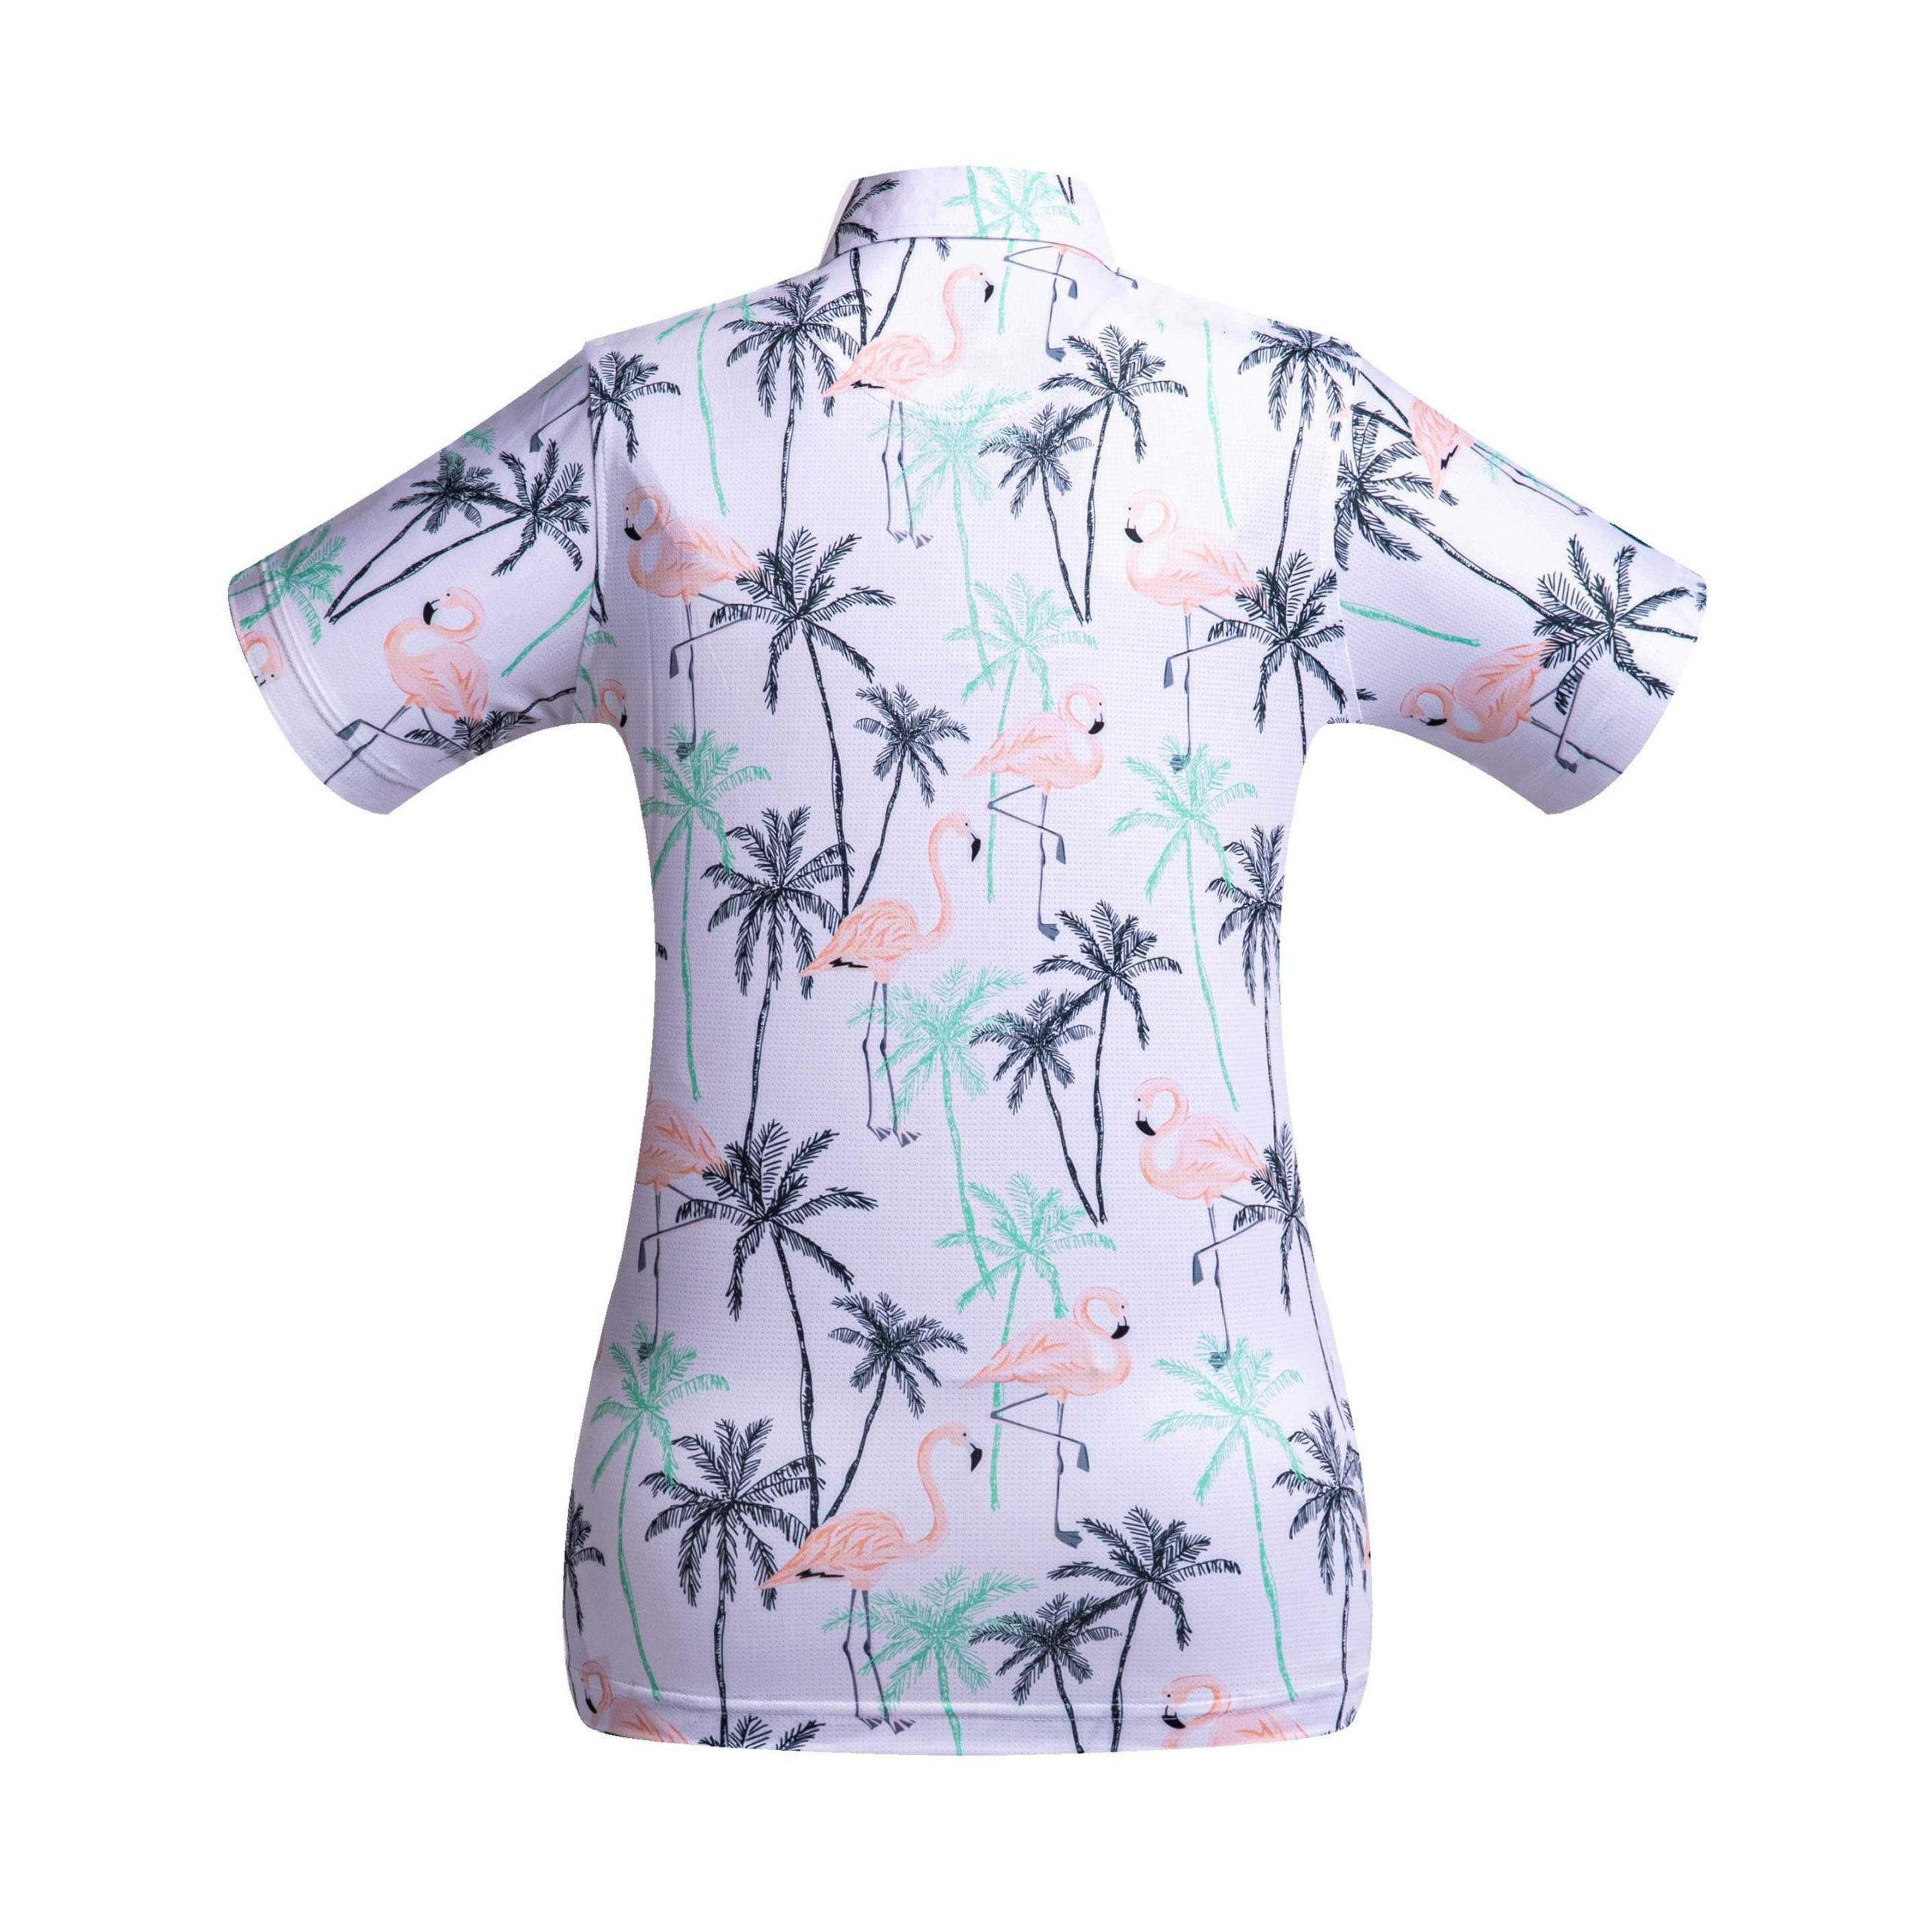 Golf shirt - Pink Flamingo